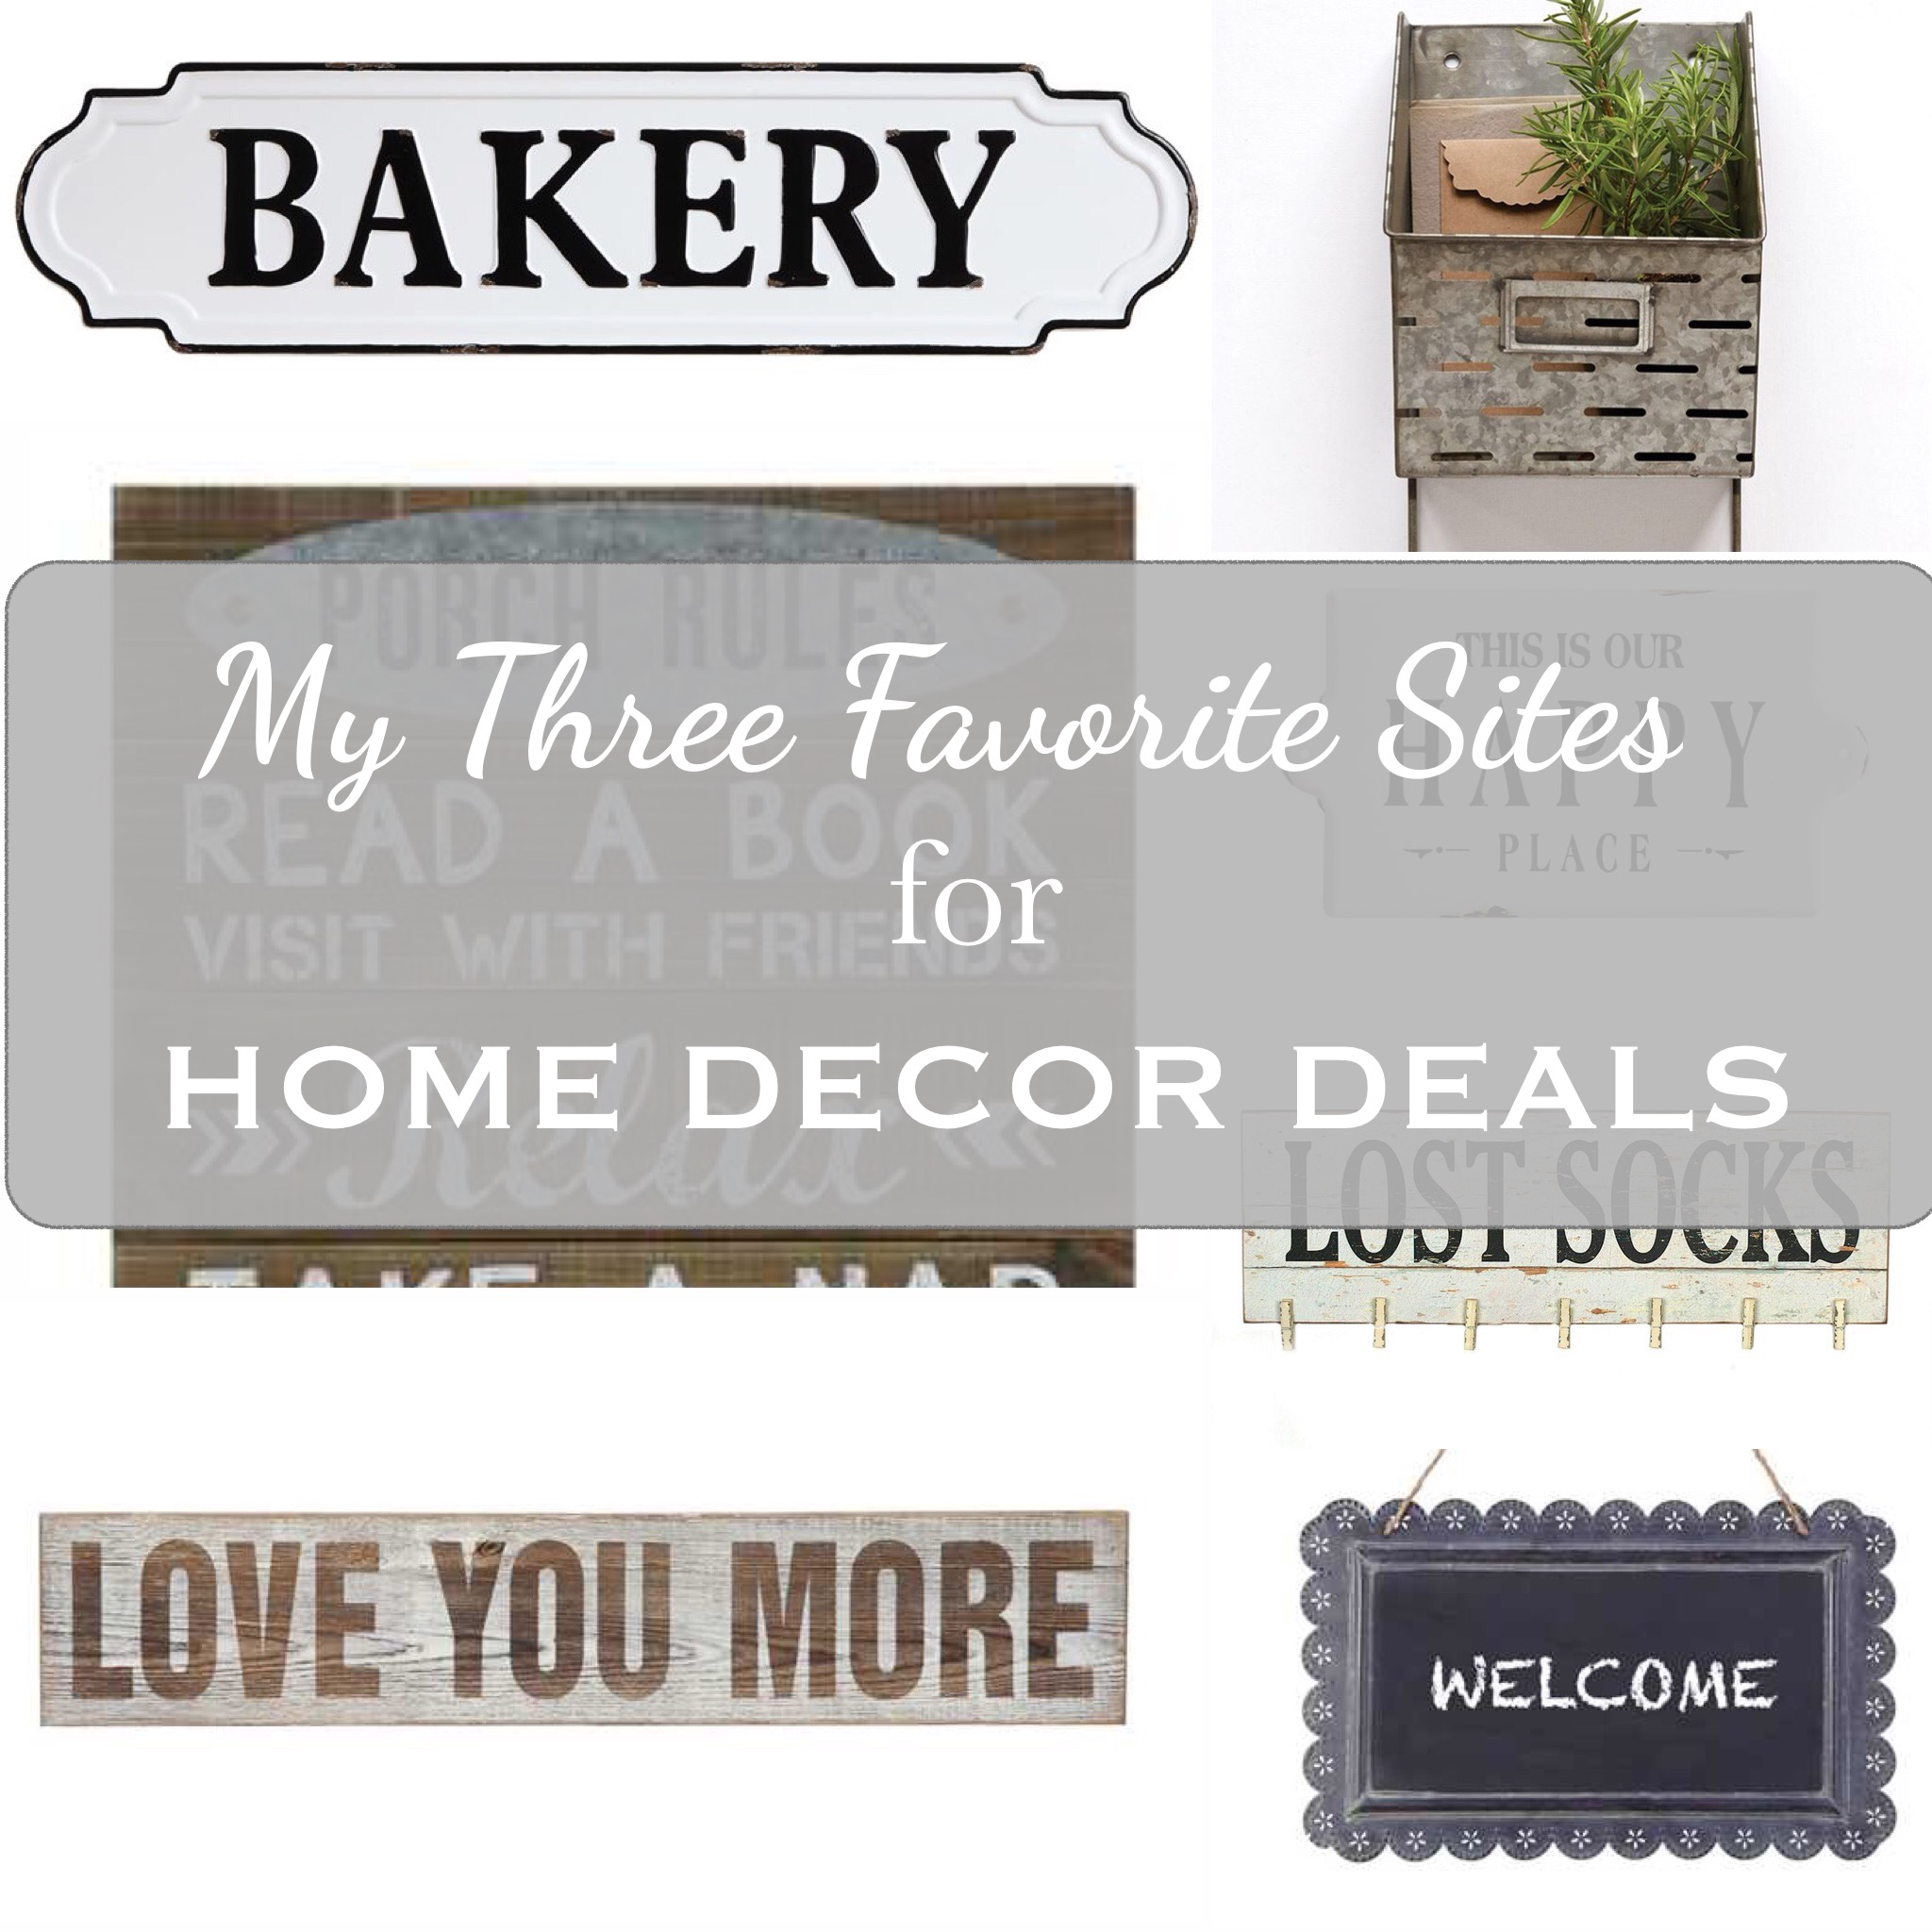 My Three Favorite Sites For Home Decor Deals